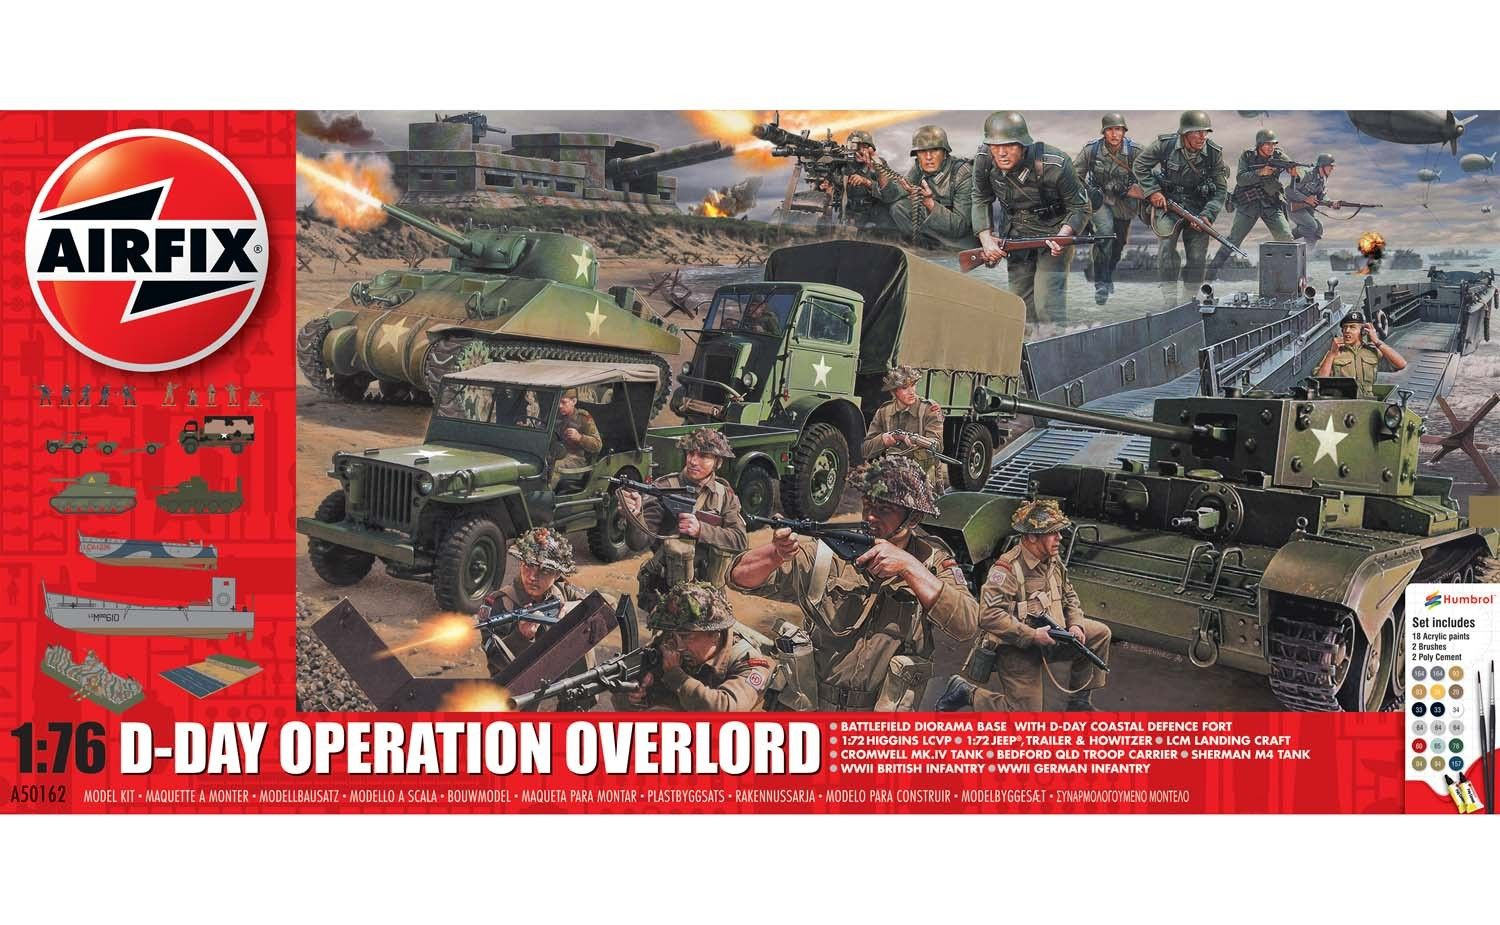 Airfix - D-Day Operation Overload - 1:76 - A50162A - Extra Large Gift Set